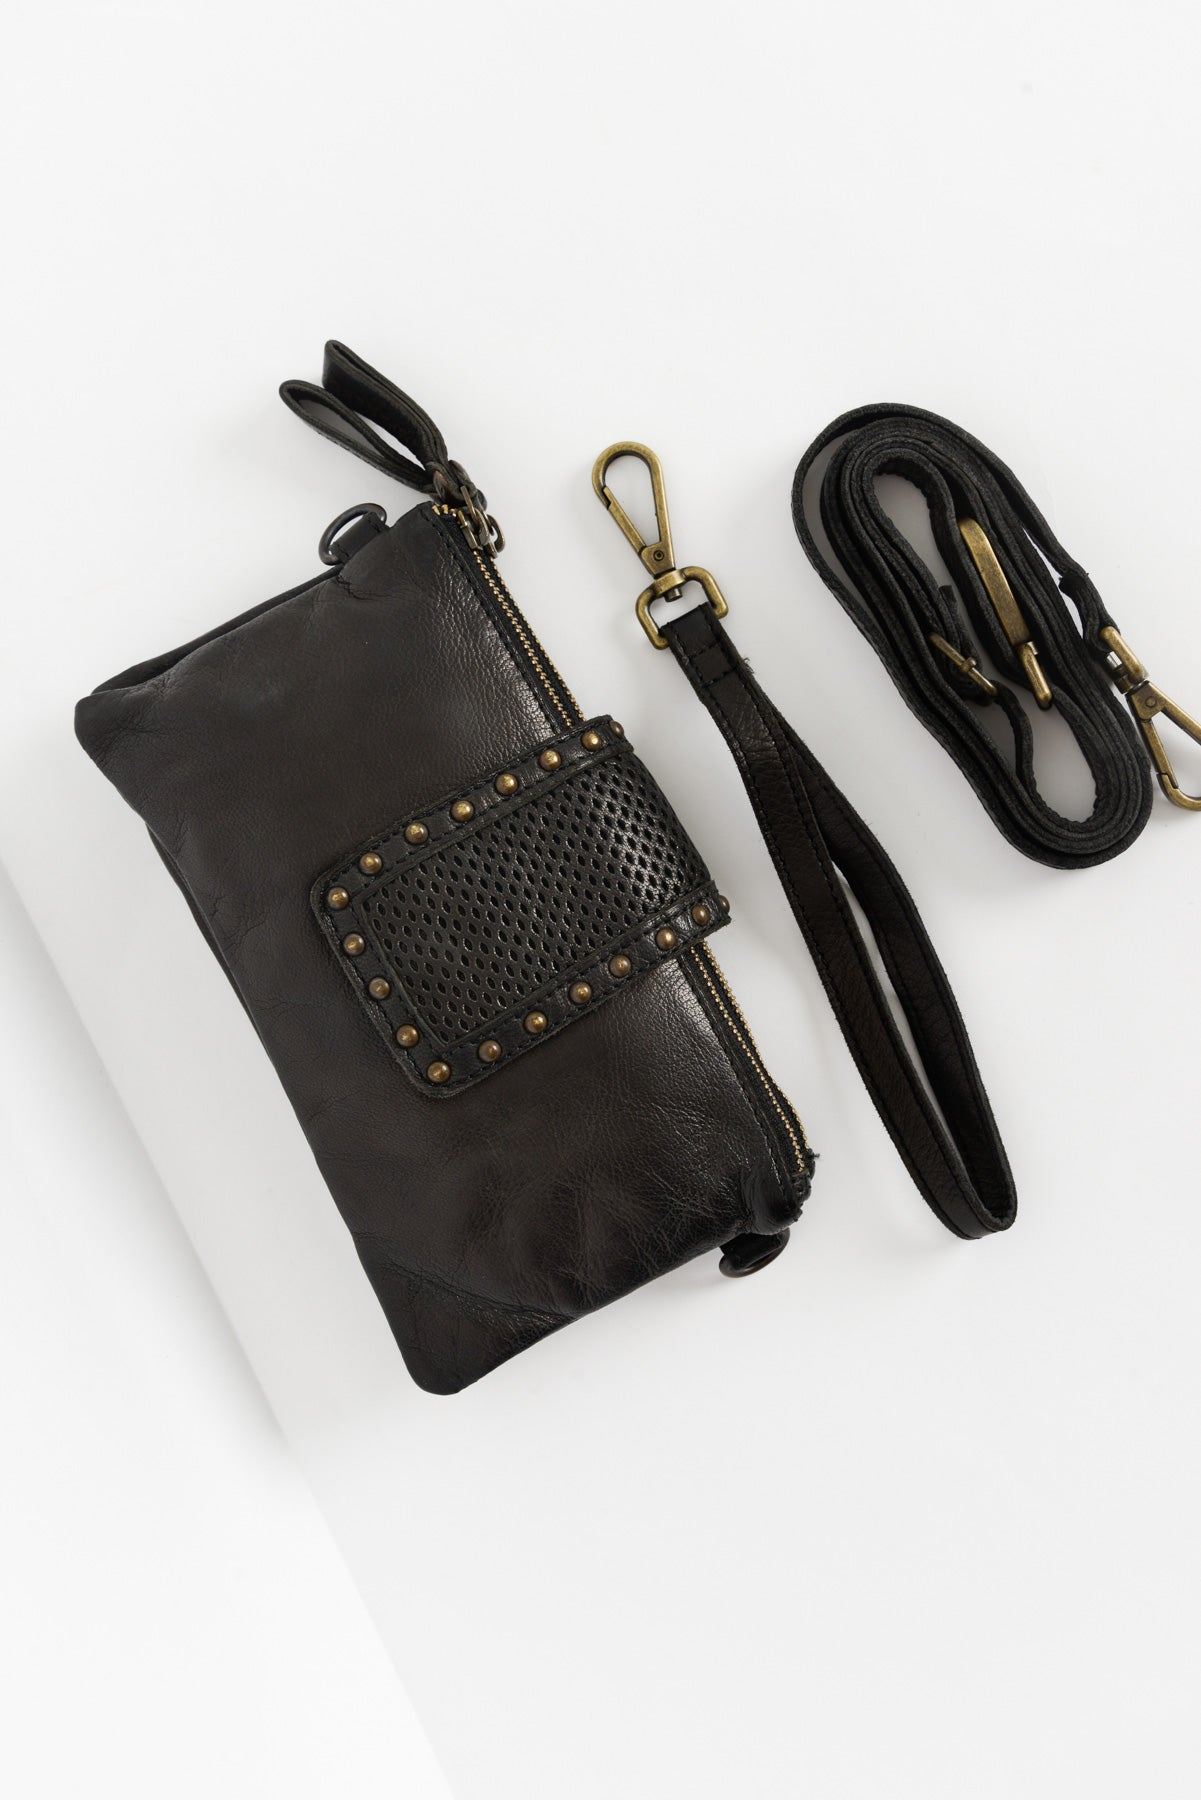 Flair Black Leather Clutch